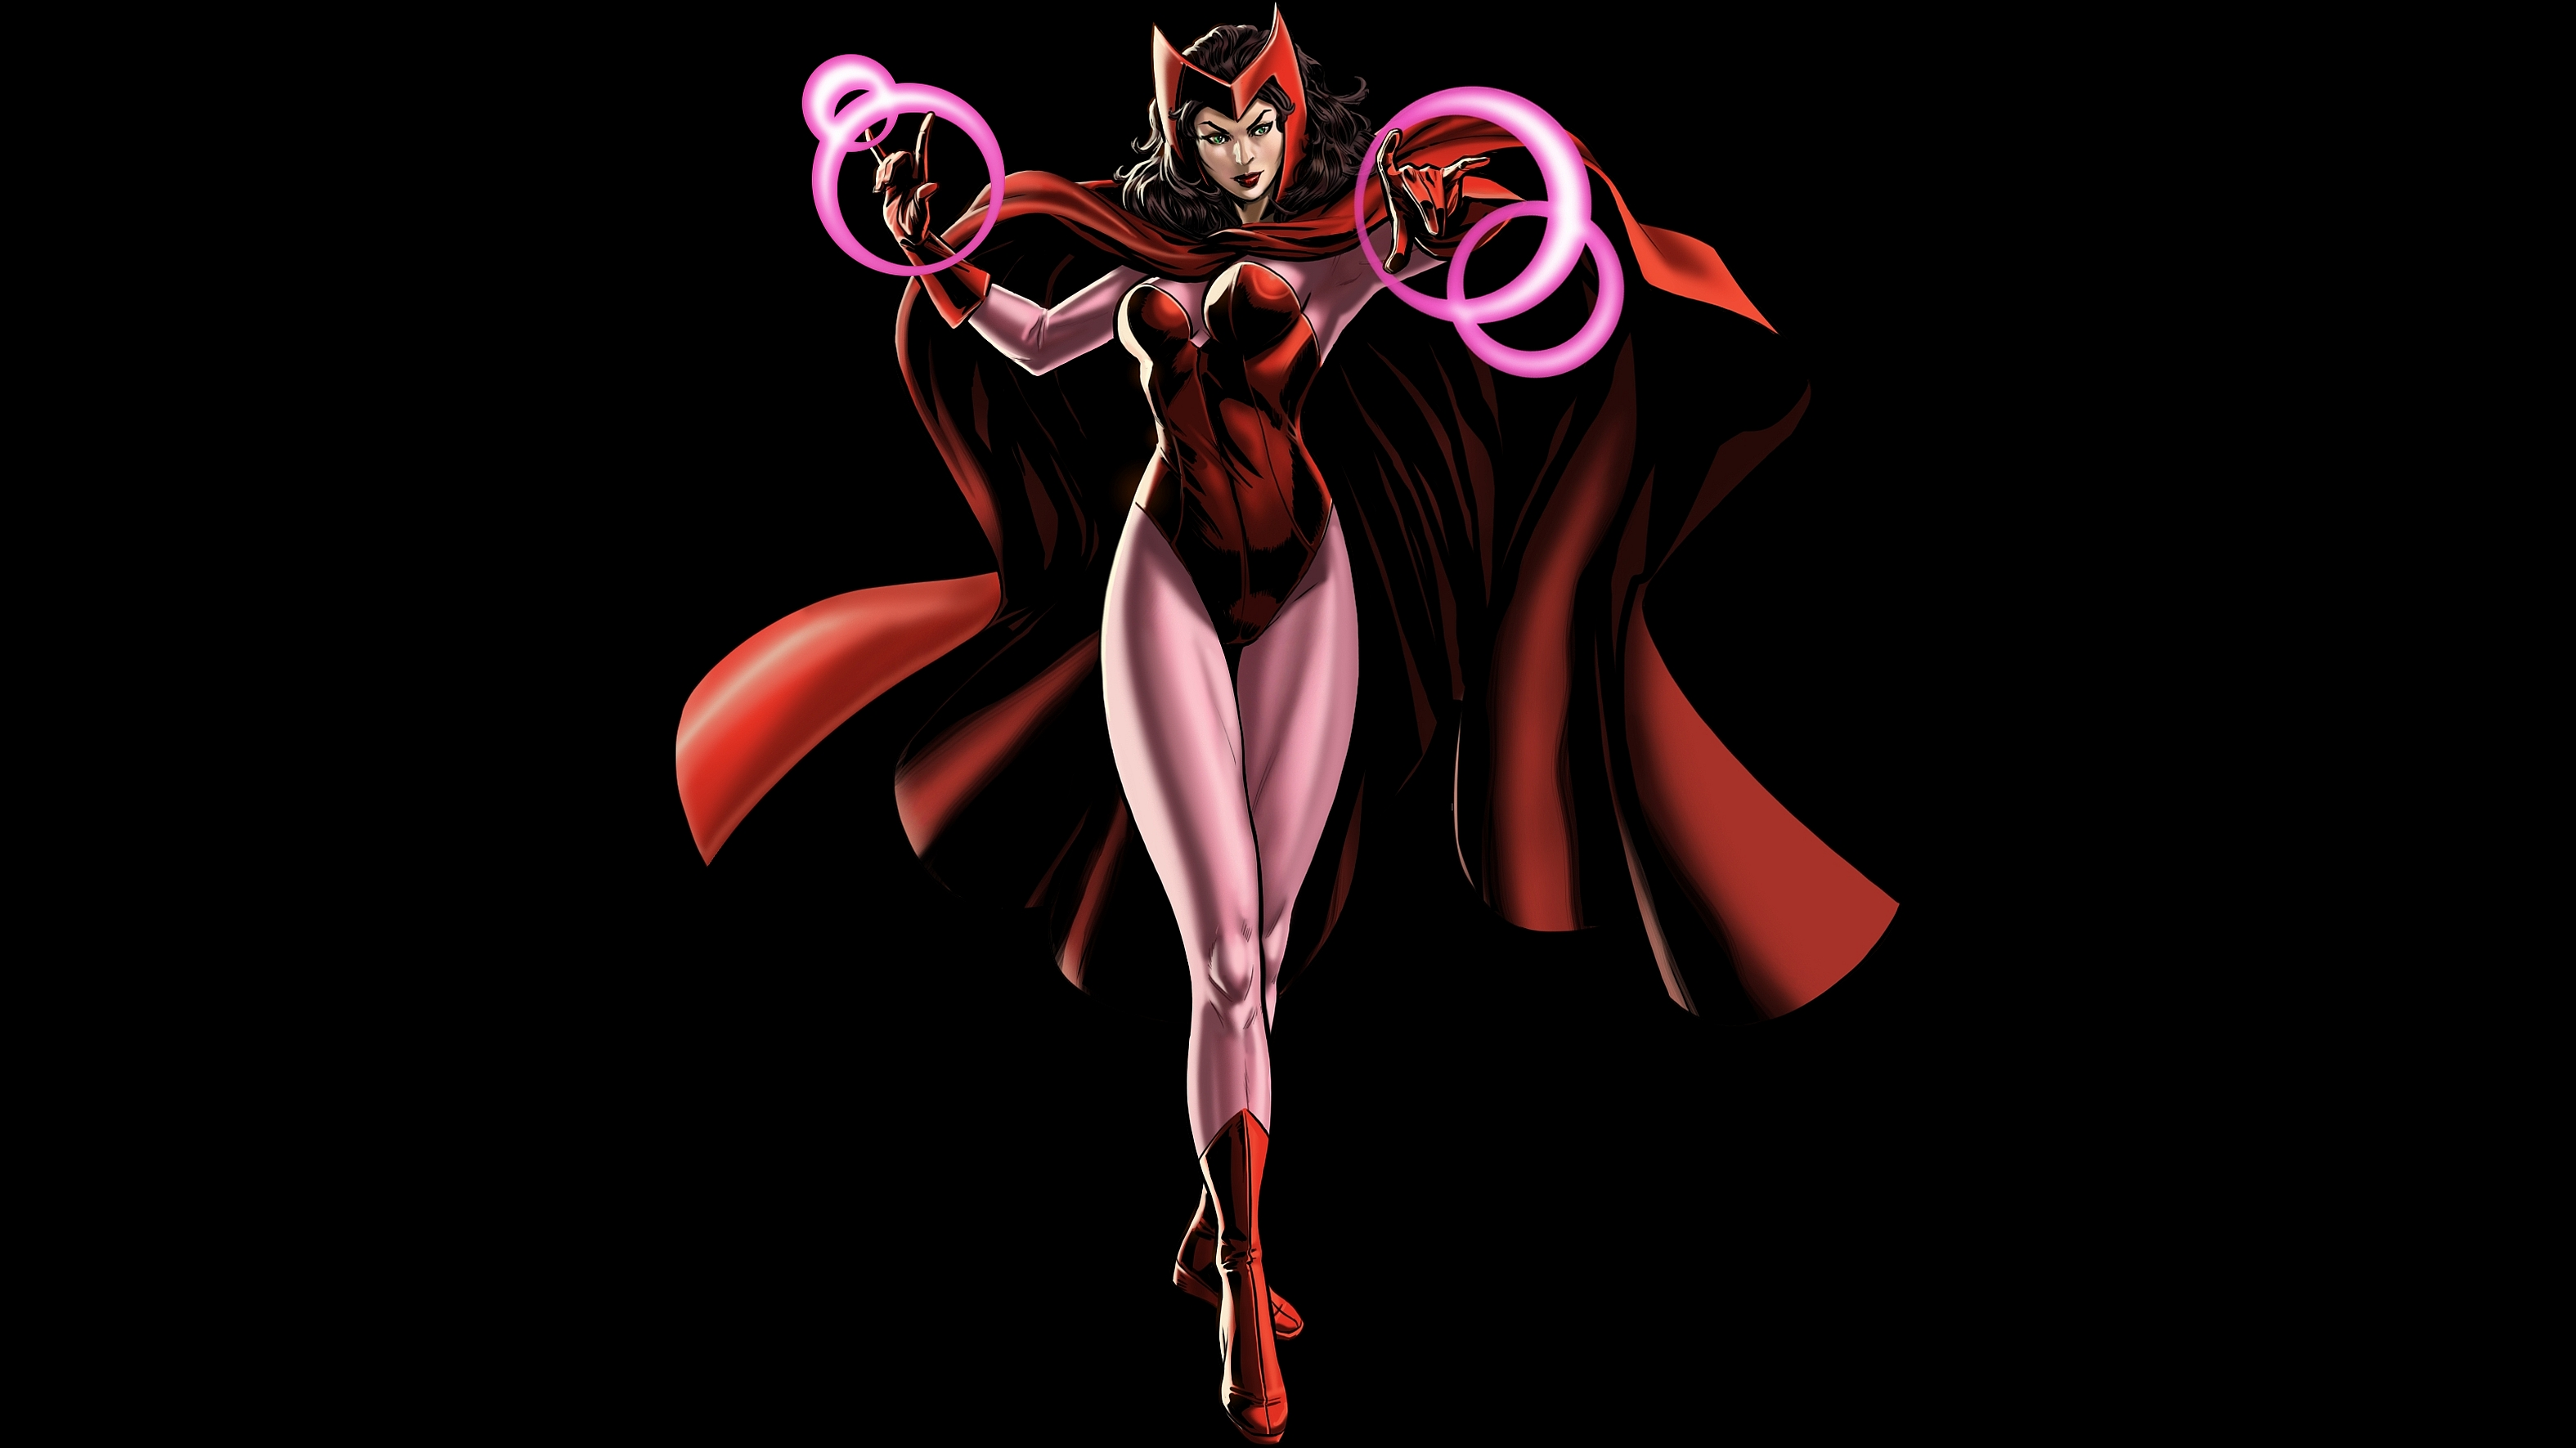 Wallpaper 3440x1440 Girl Scarlet Witch Full Hd Wallpaper And Background Image